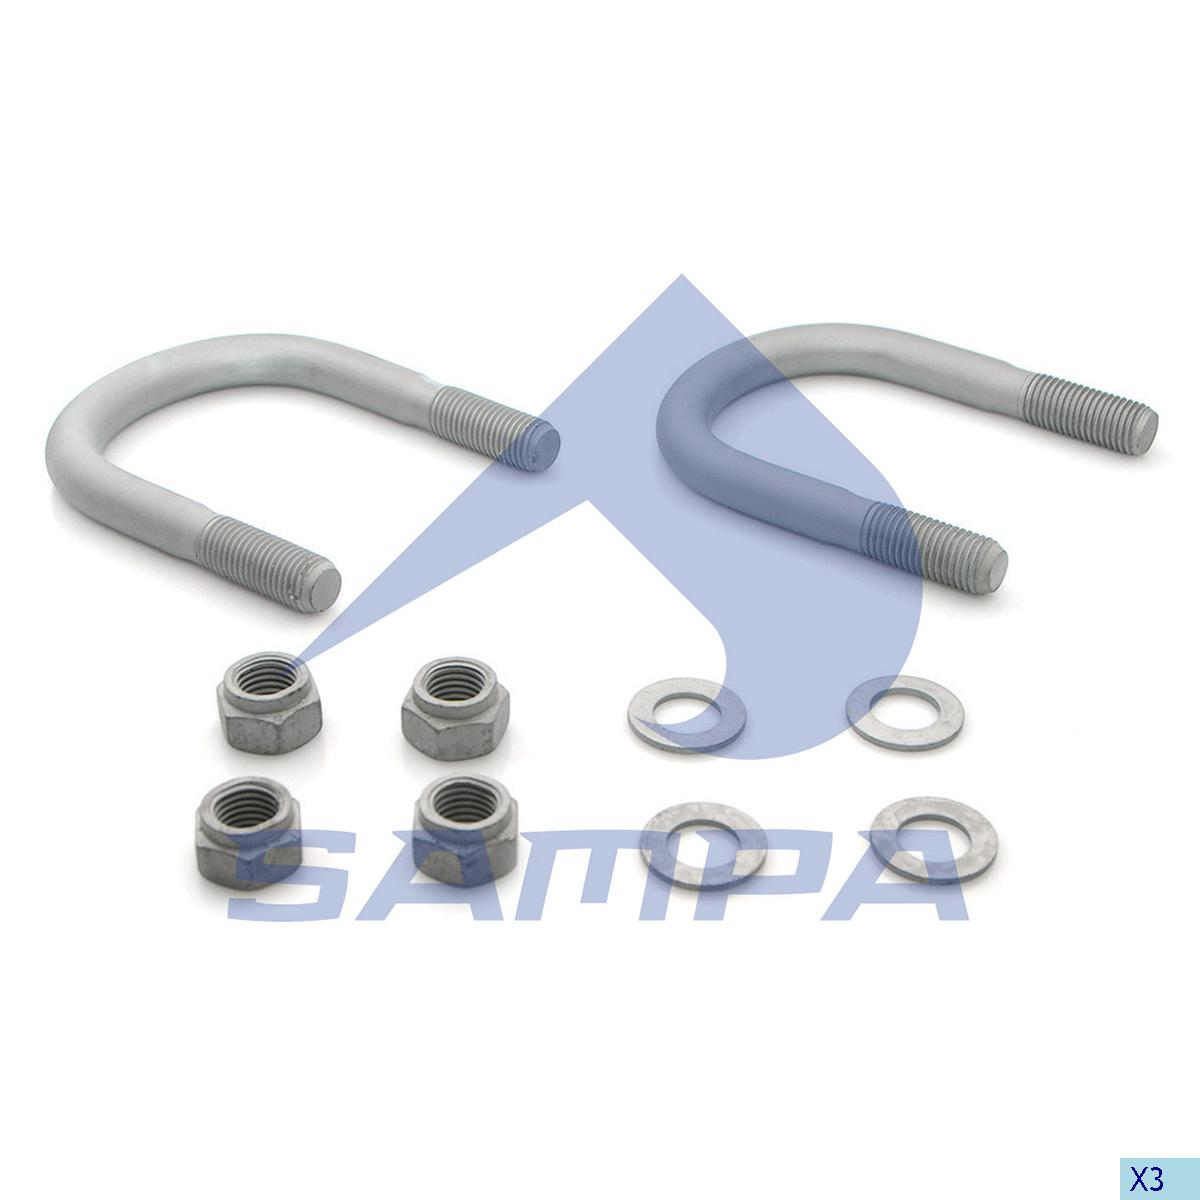 Repair Kit, Spring, Bergische, Suspension